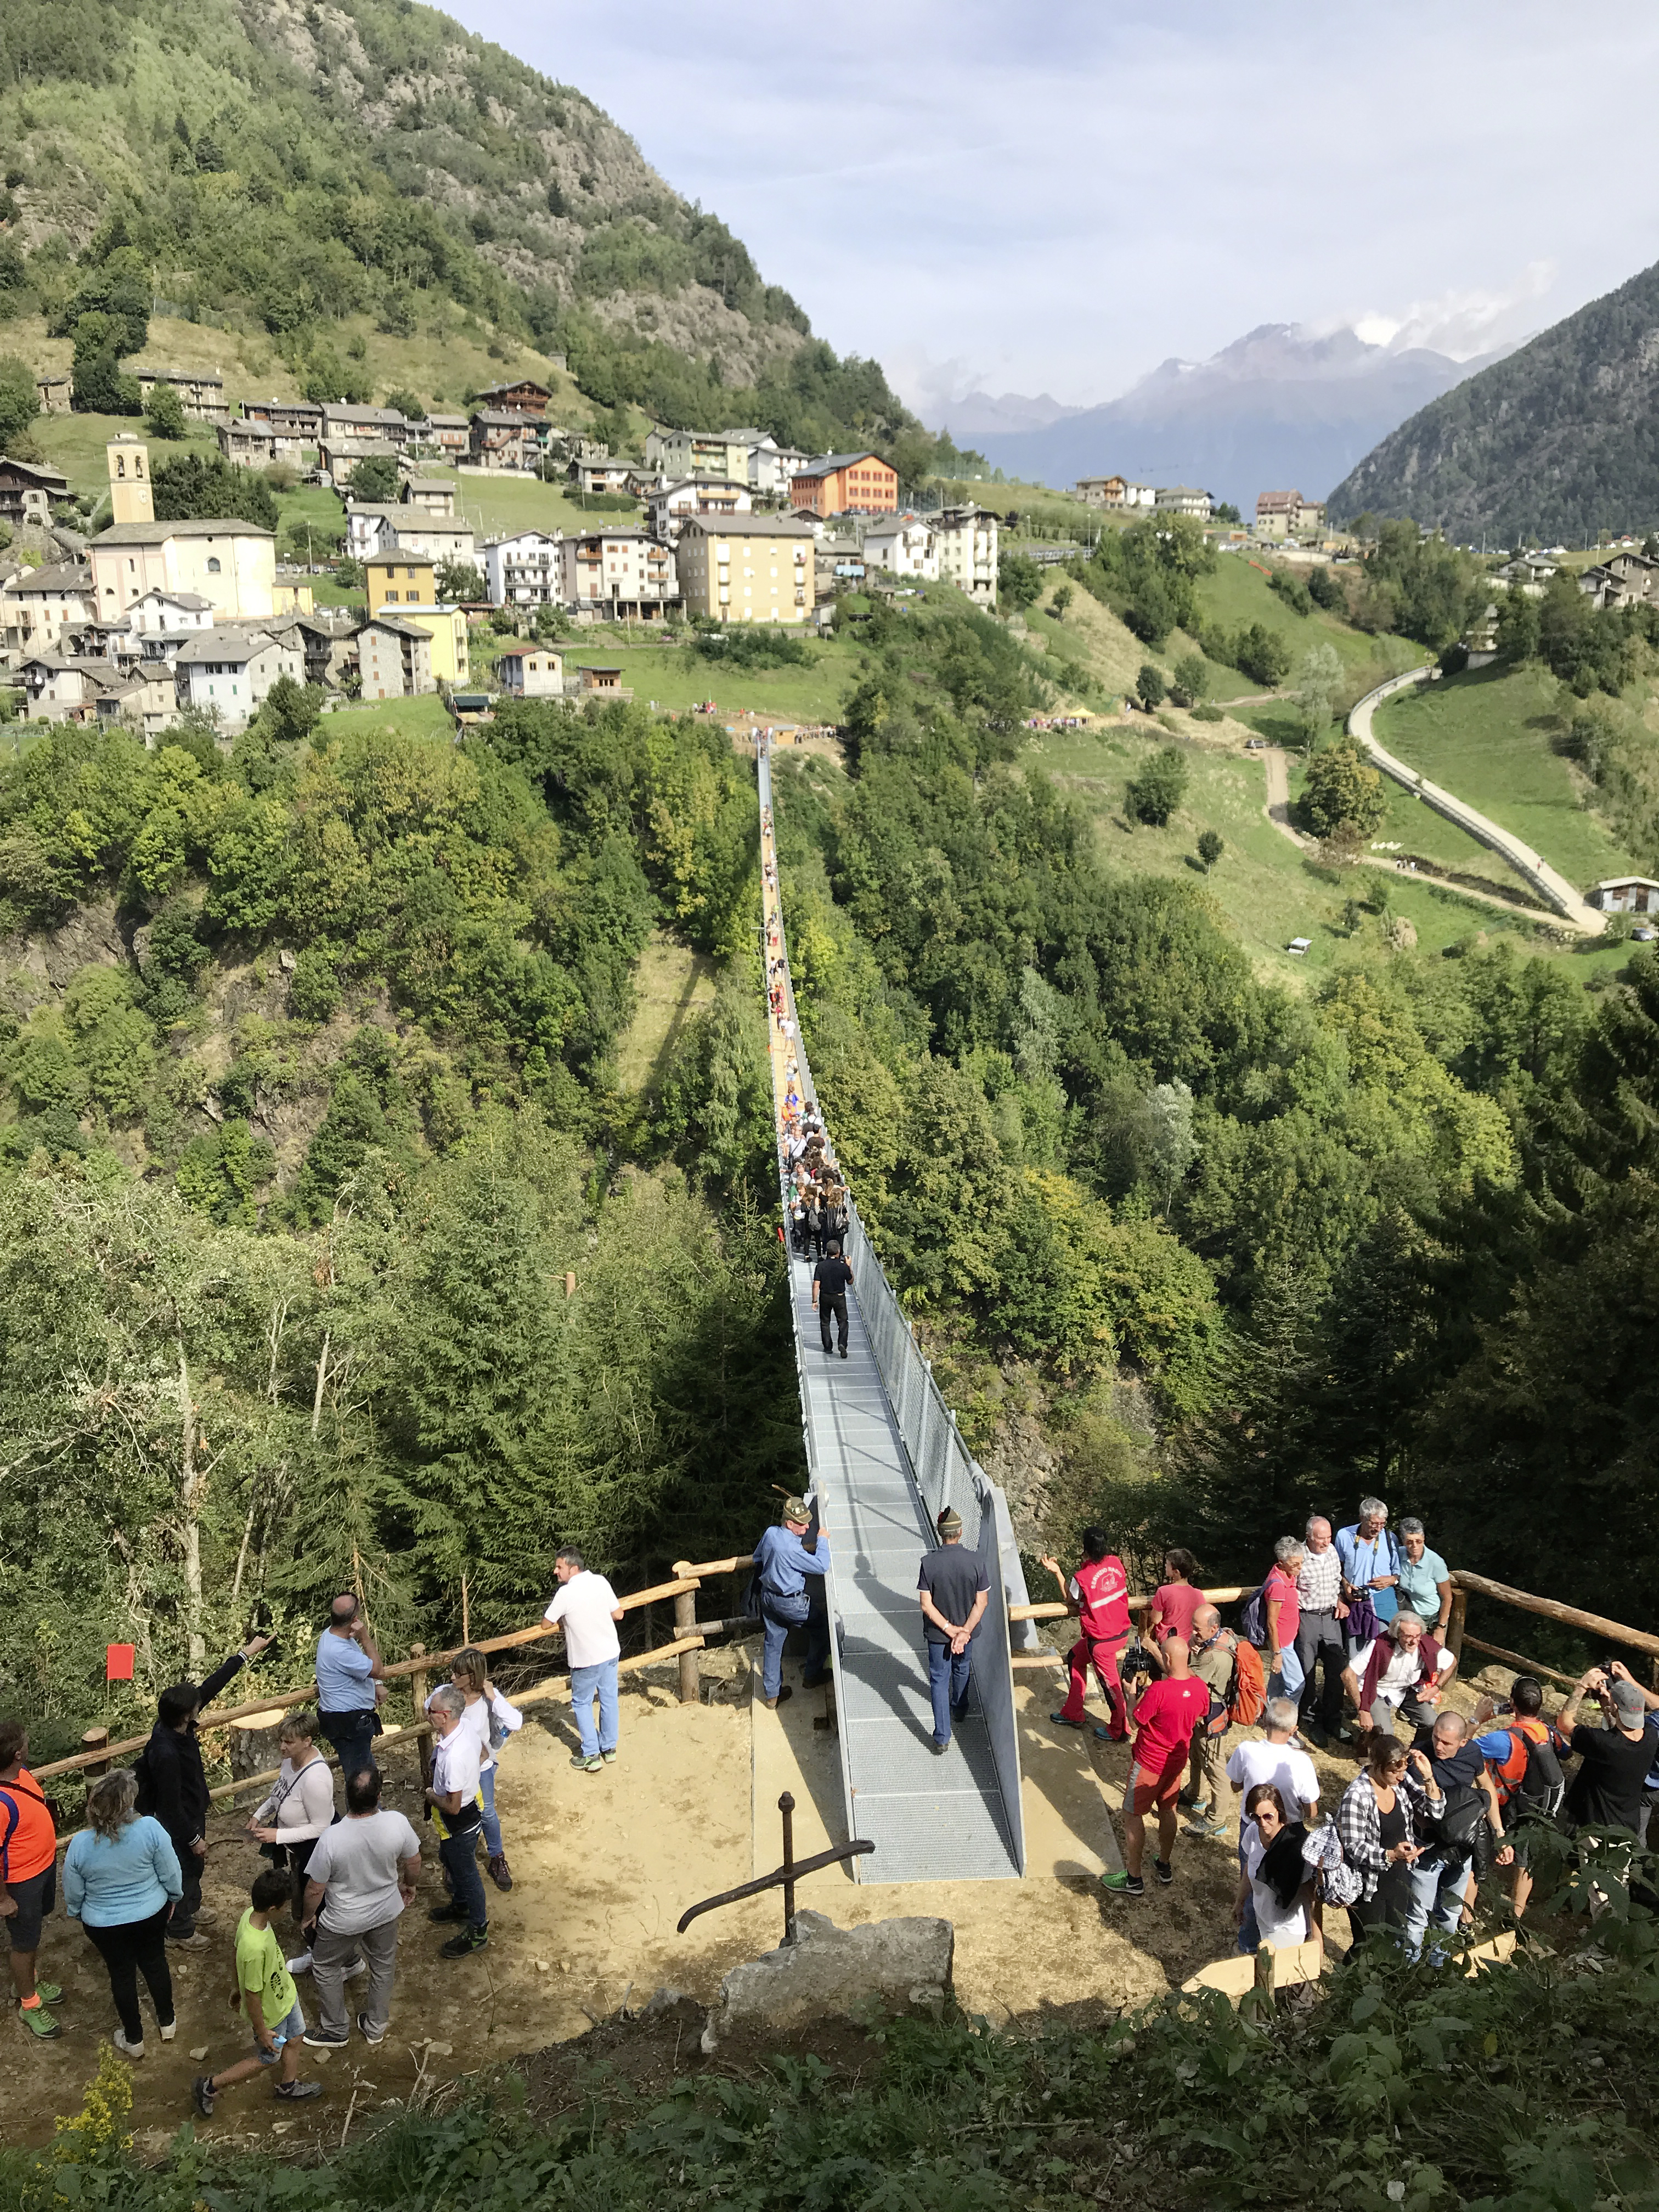 Costruzione di ponti, ponte sospeso pedonale, Tartano - Road and bridge construction